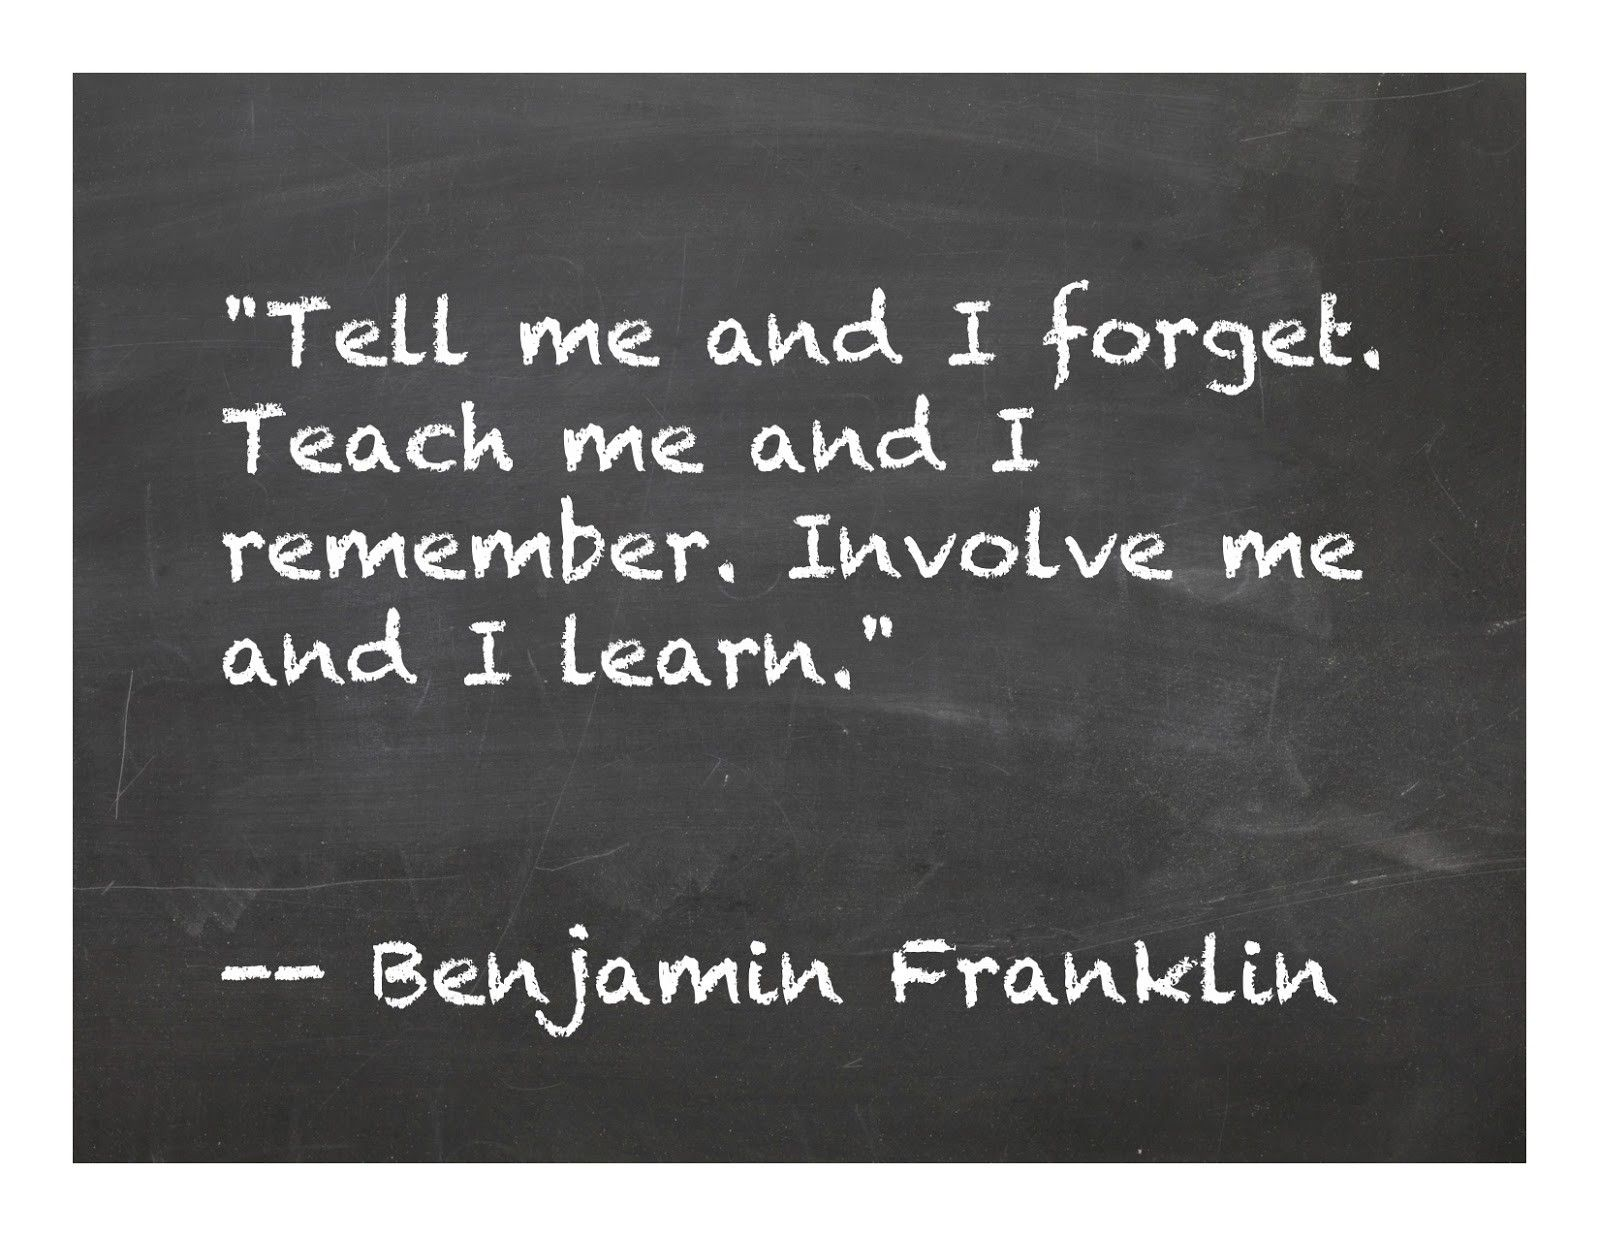 Famous quotes about learning styles quotesgram - Eager To Learn Quotes Quotesgram